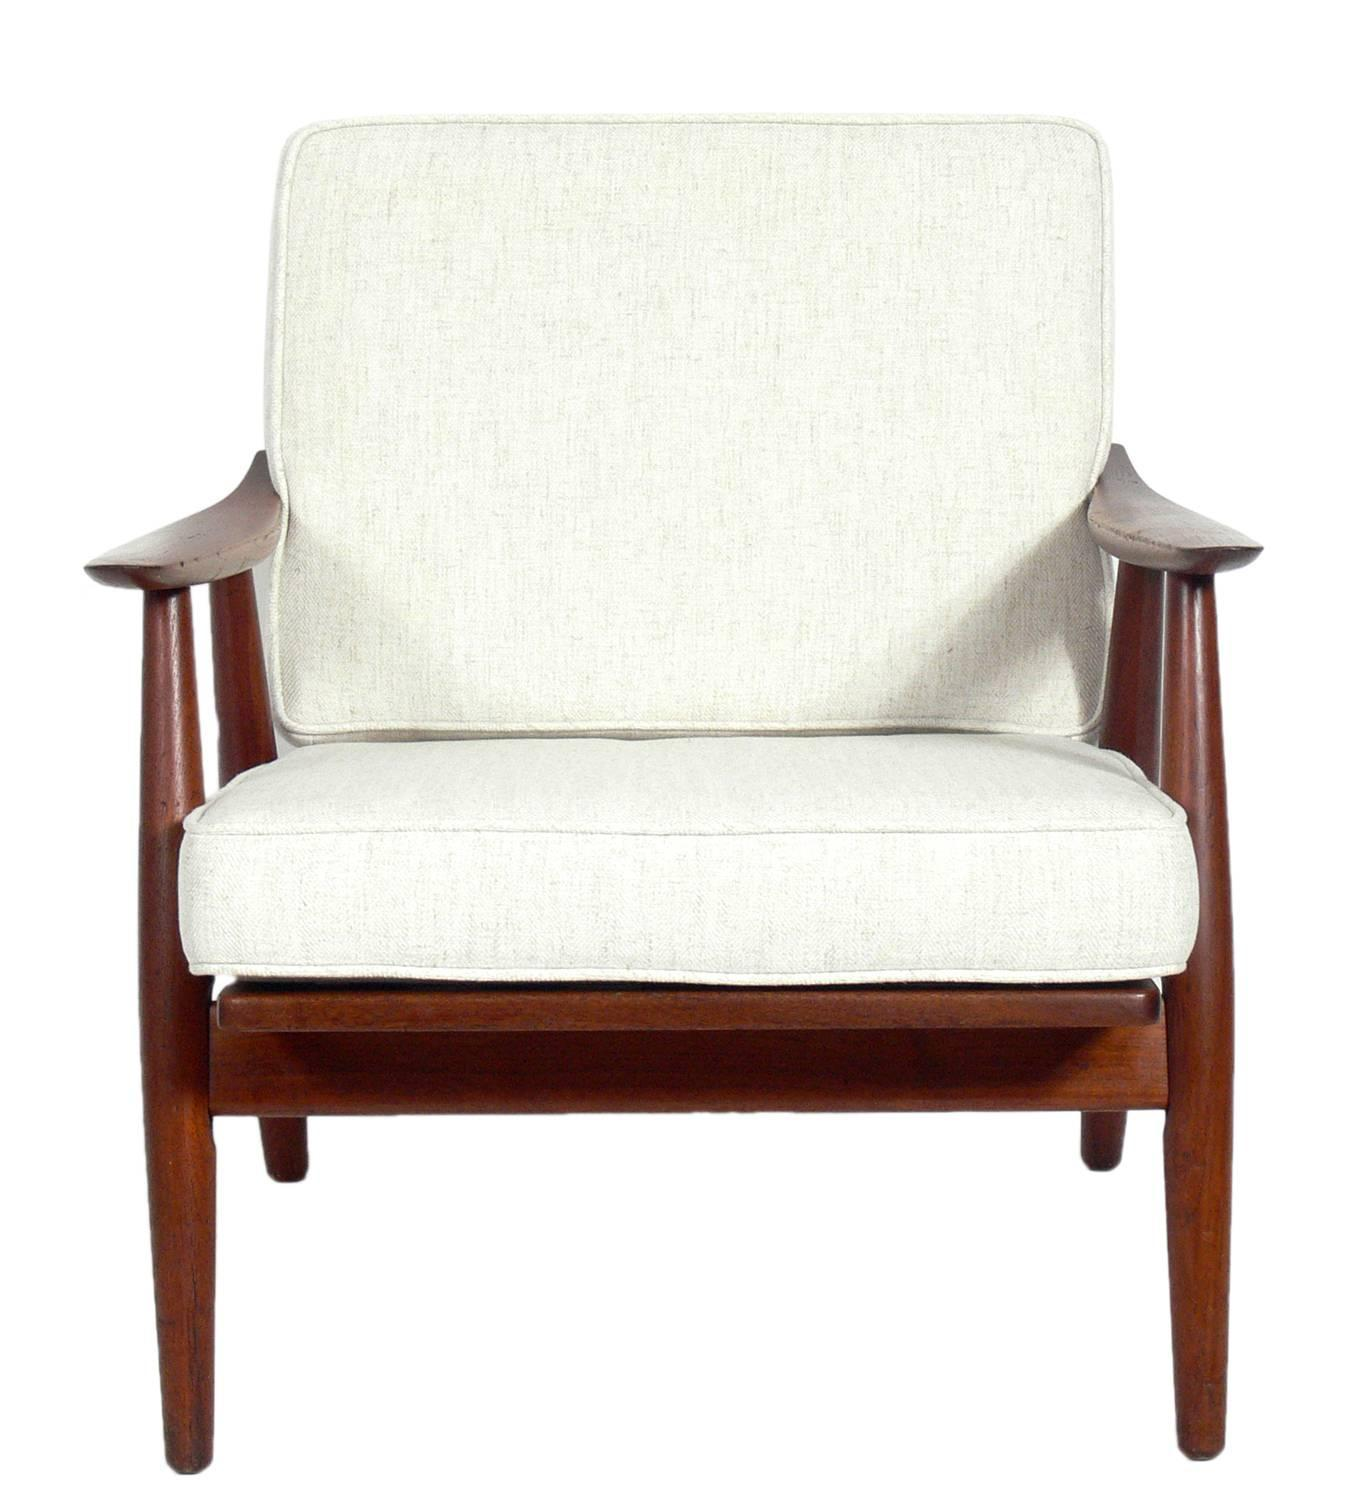 Pair Of Danish Modern Lounge Chairs By Hans Wegner For